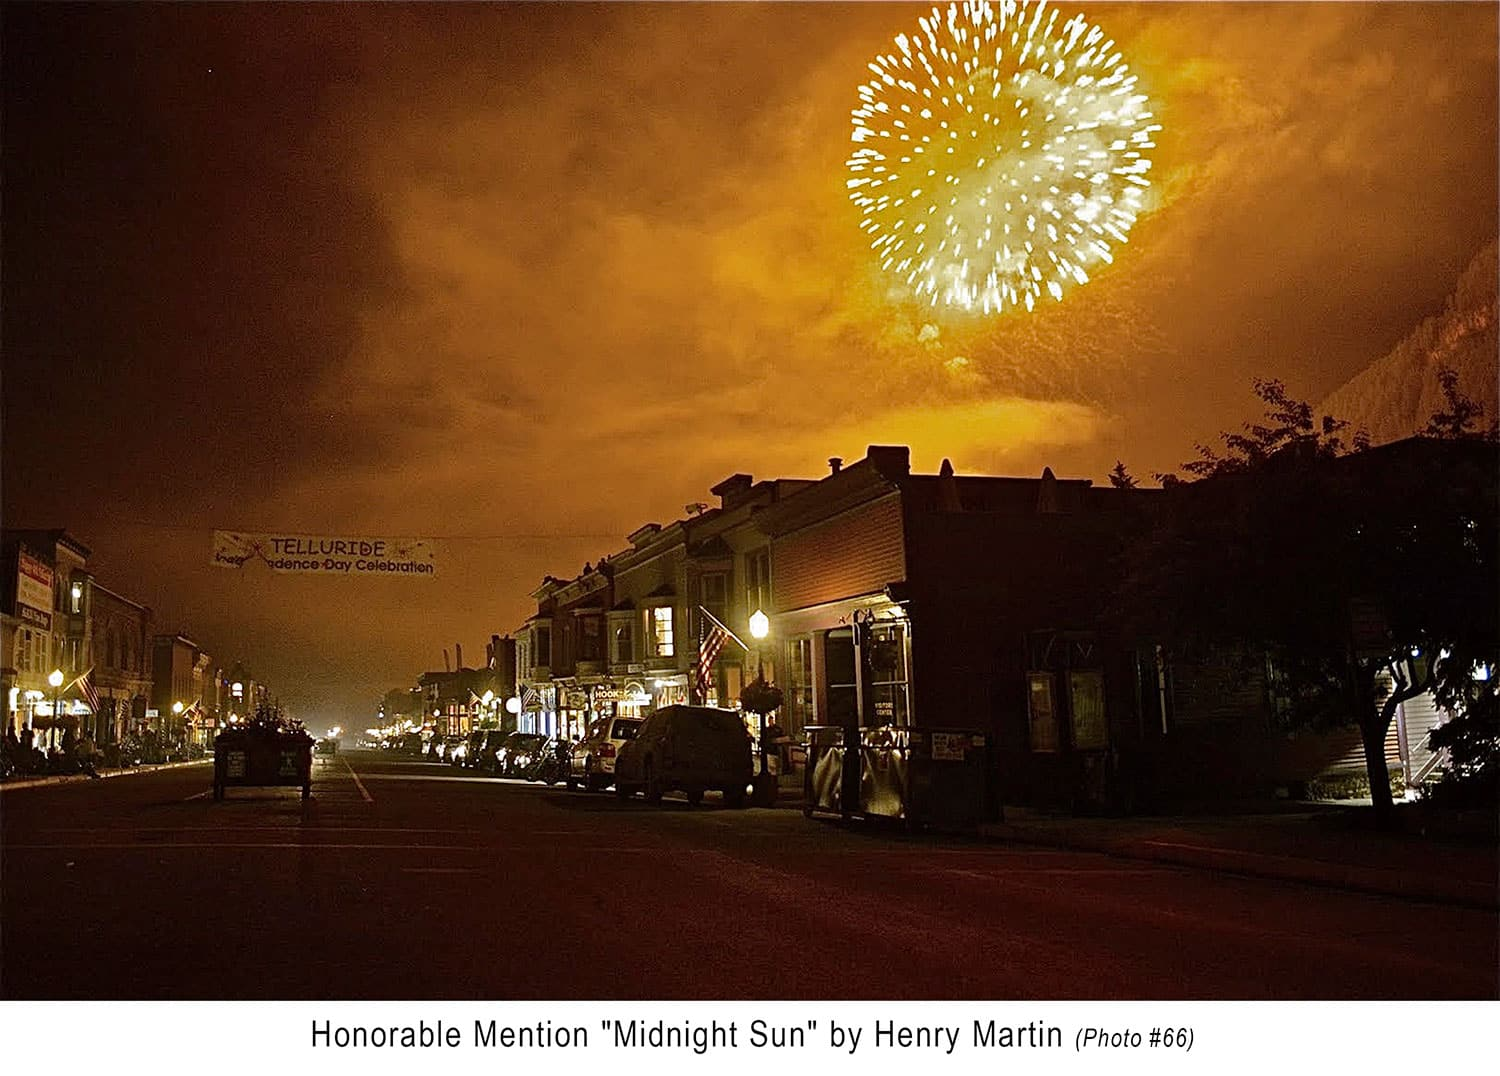 Honorable Mention - Henry Martin